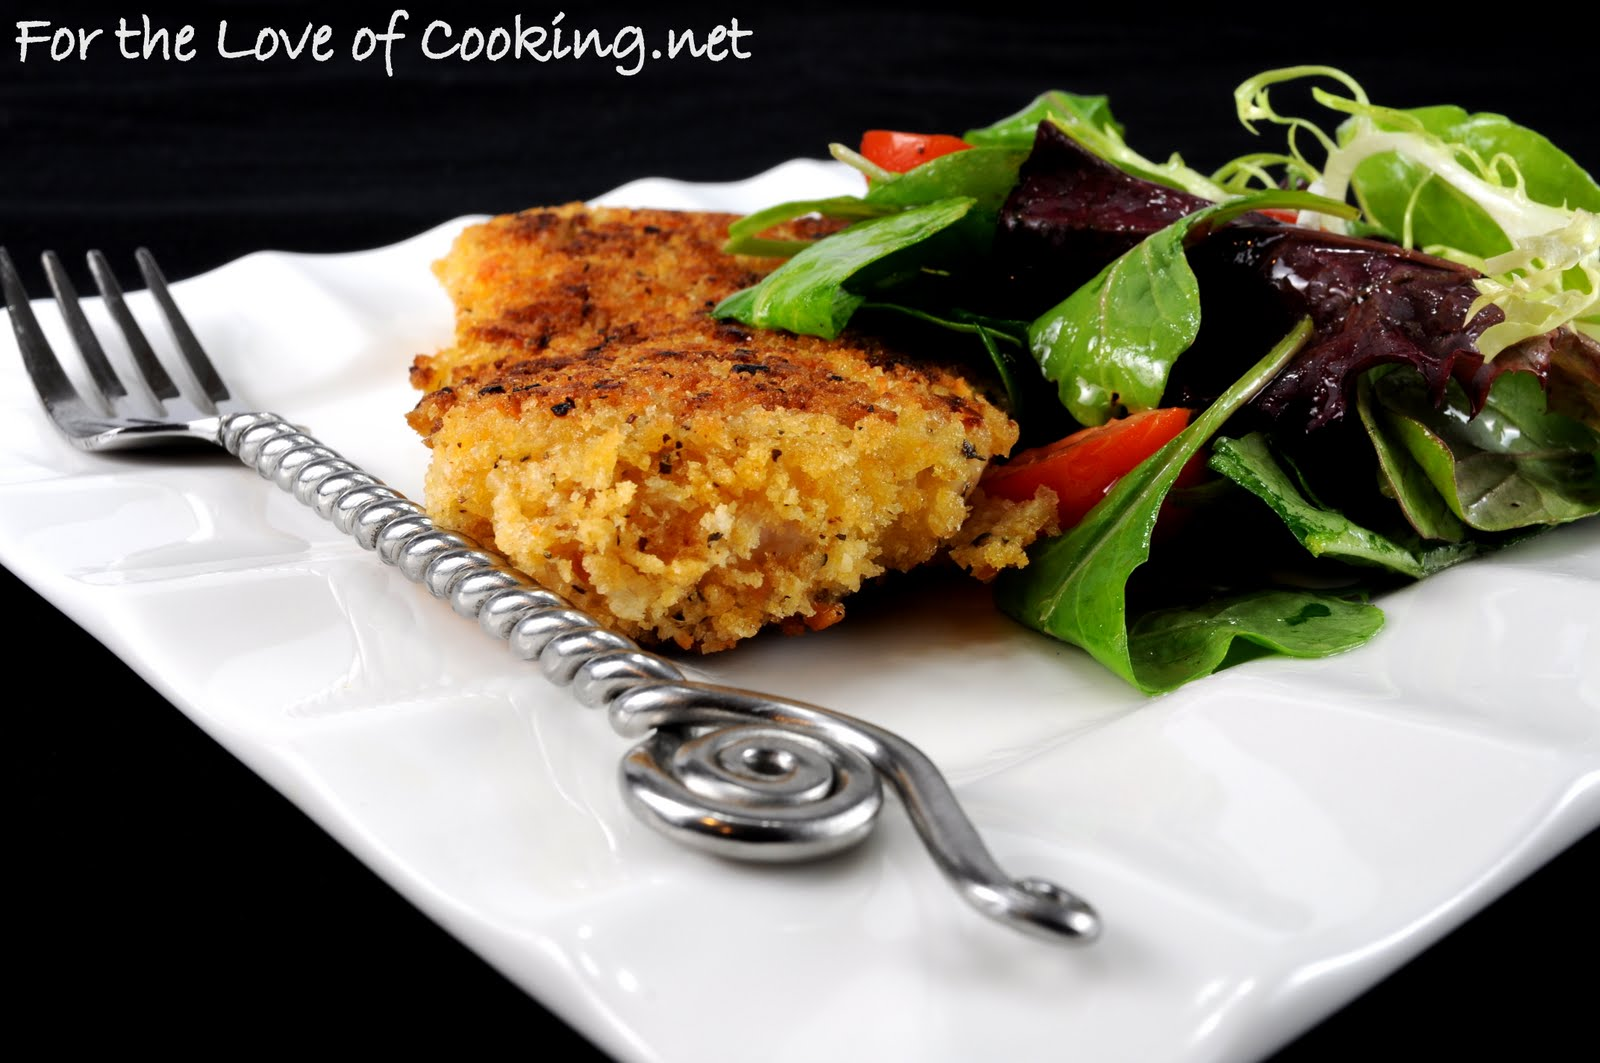 Chicken Milanese with Spring Greens | For the Love of Cooking